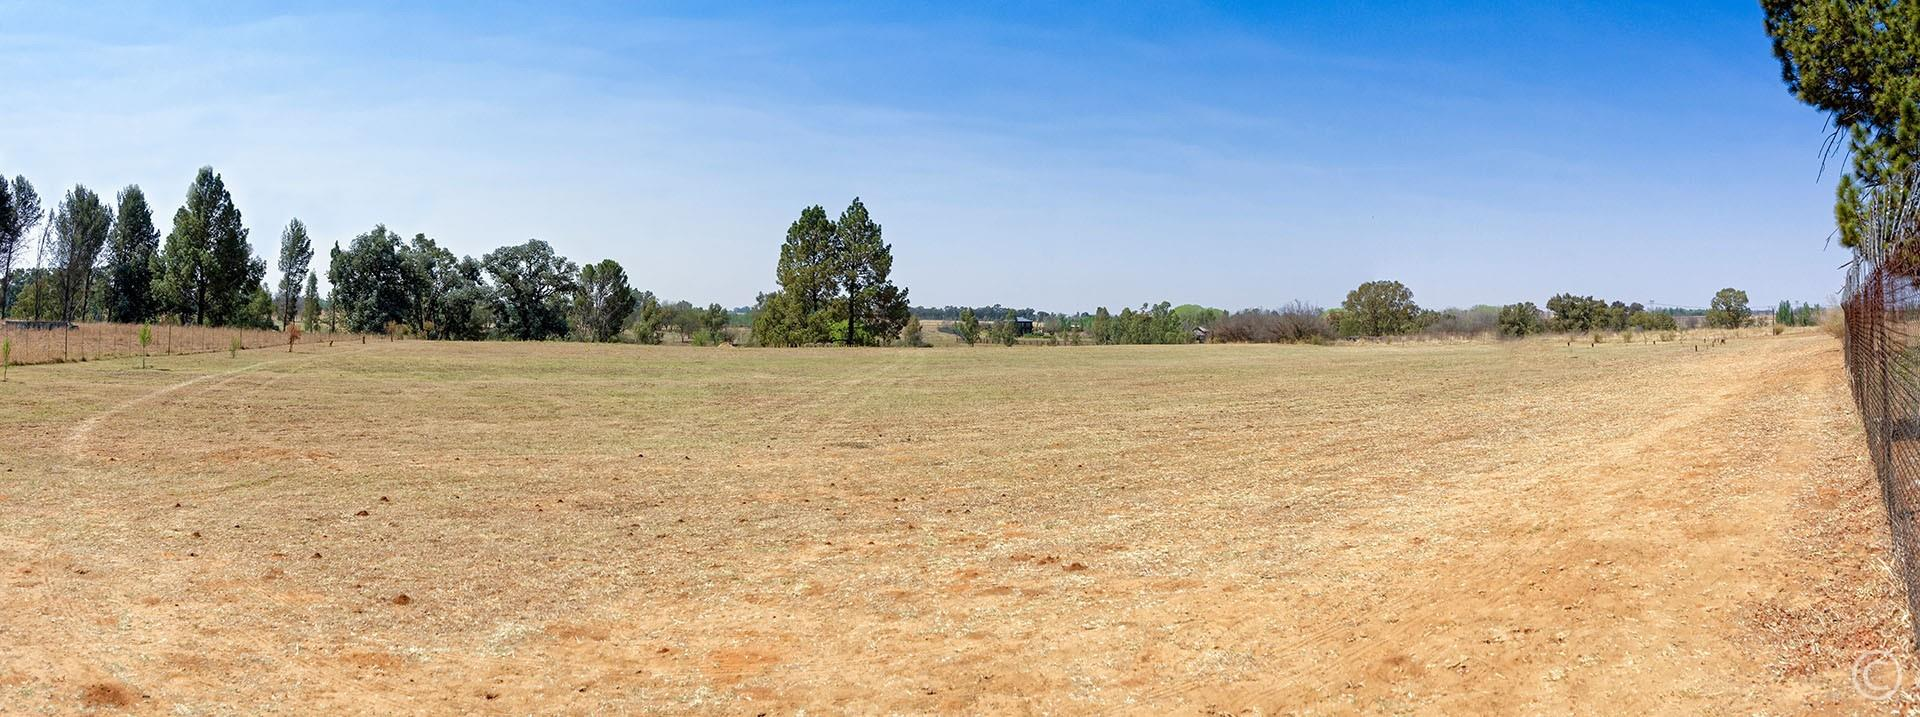 Vacant Land / Plot in Vaal Power A H For Sale